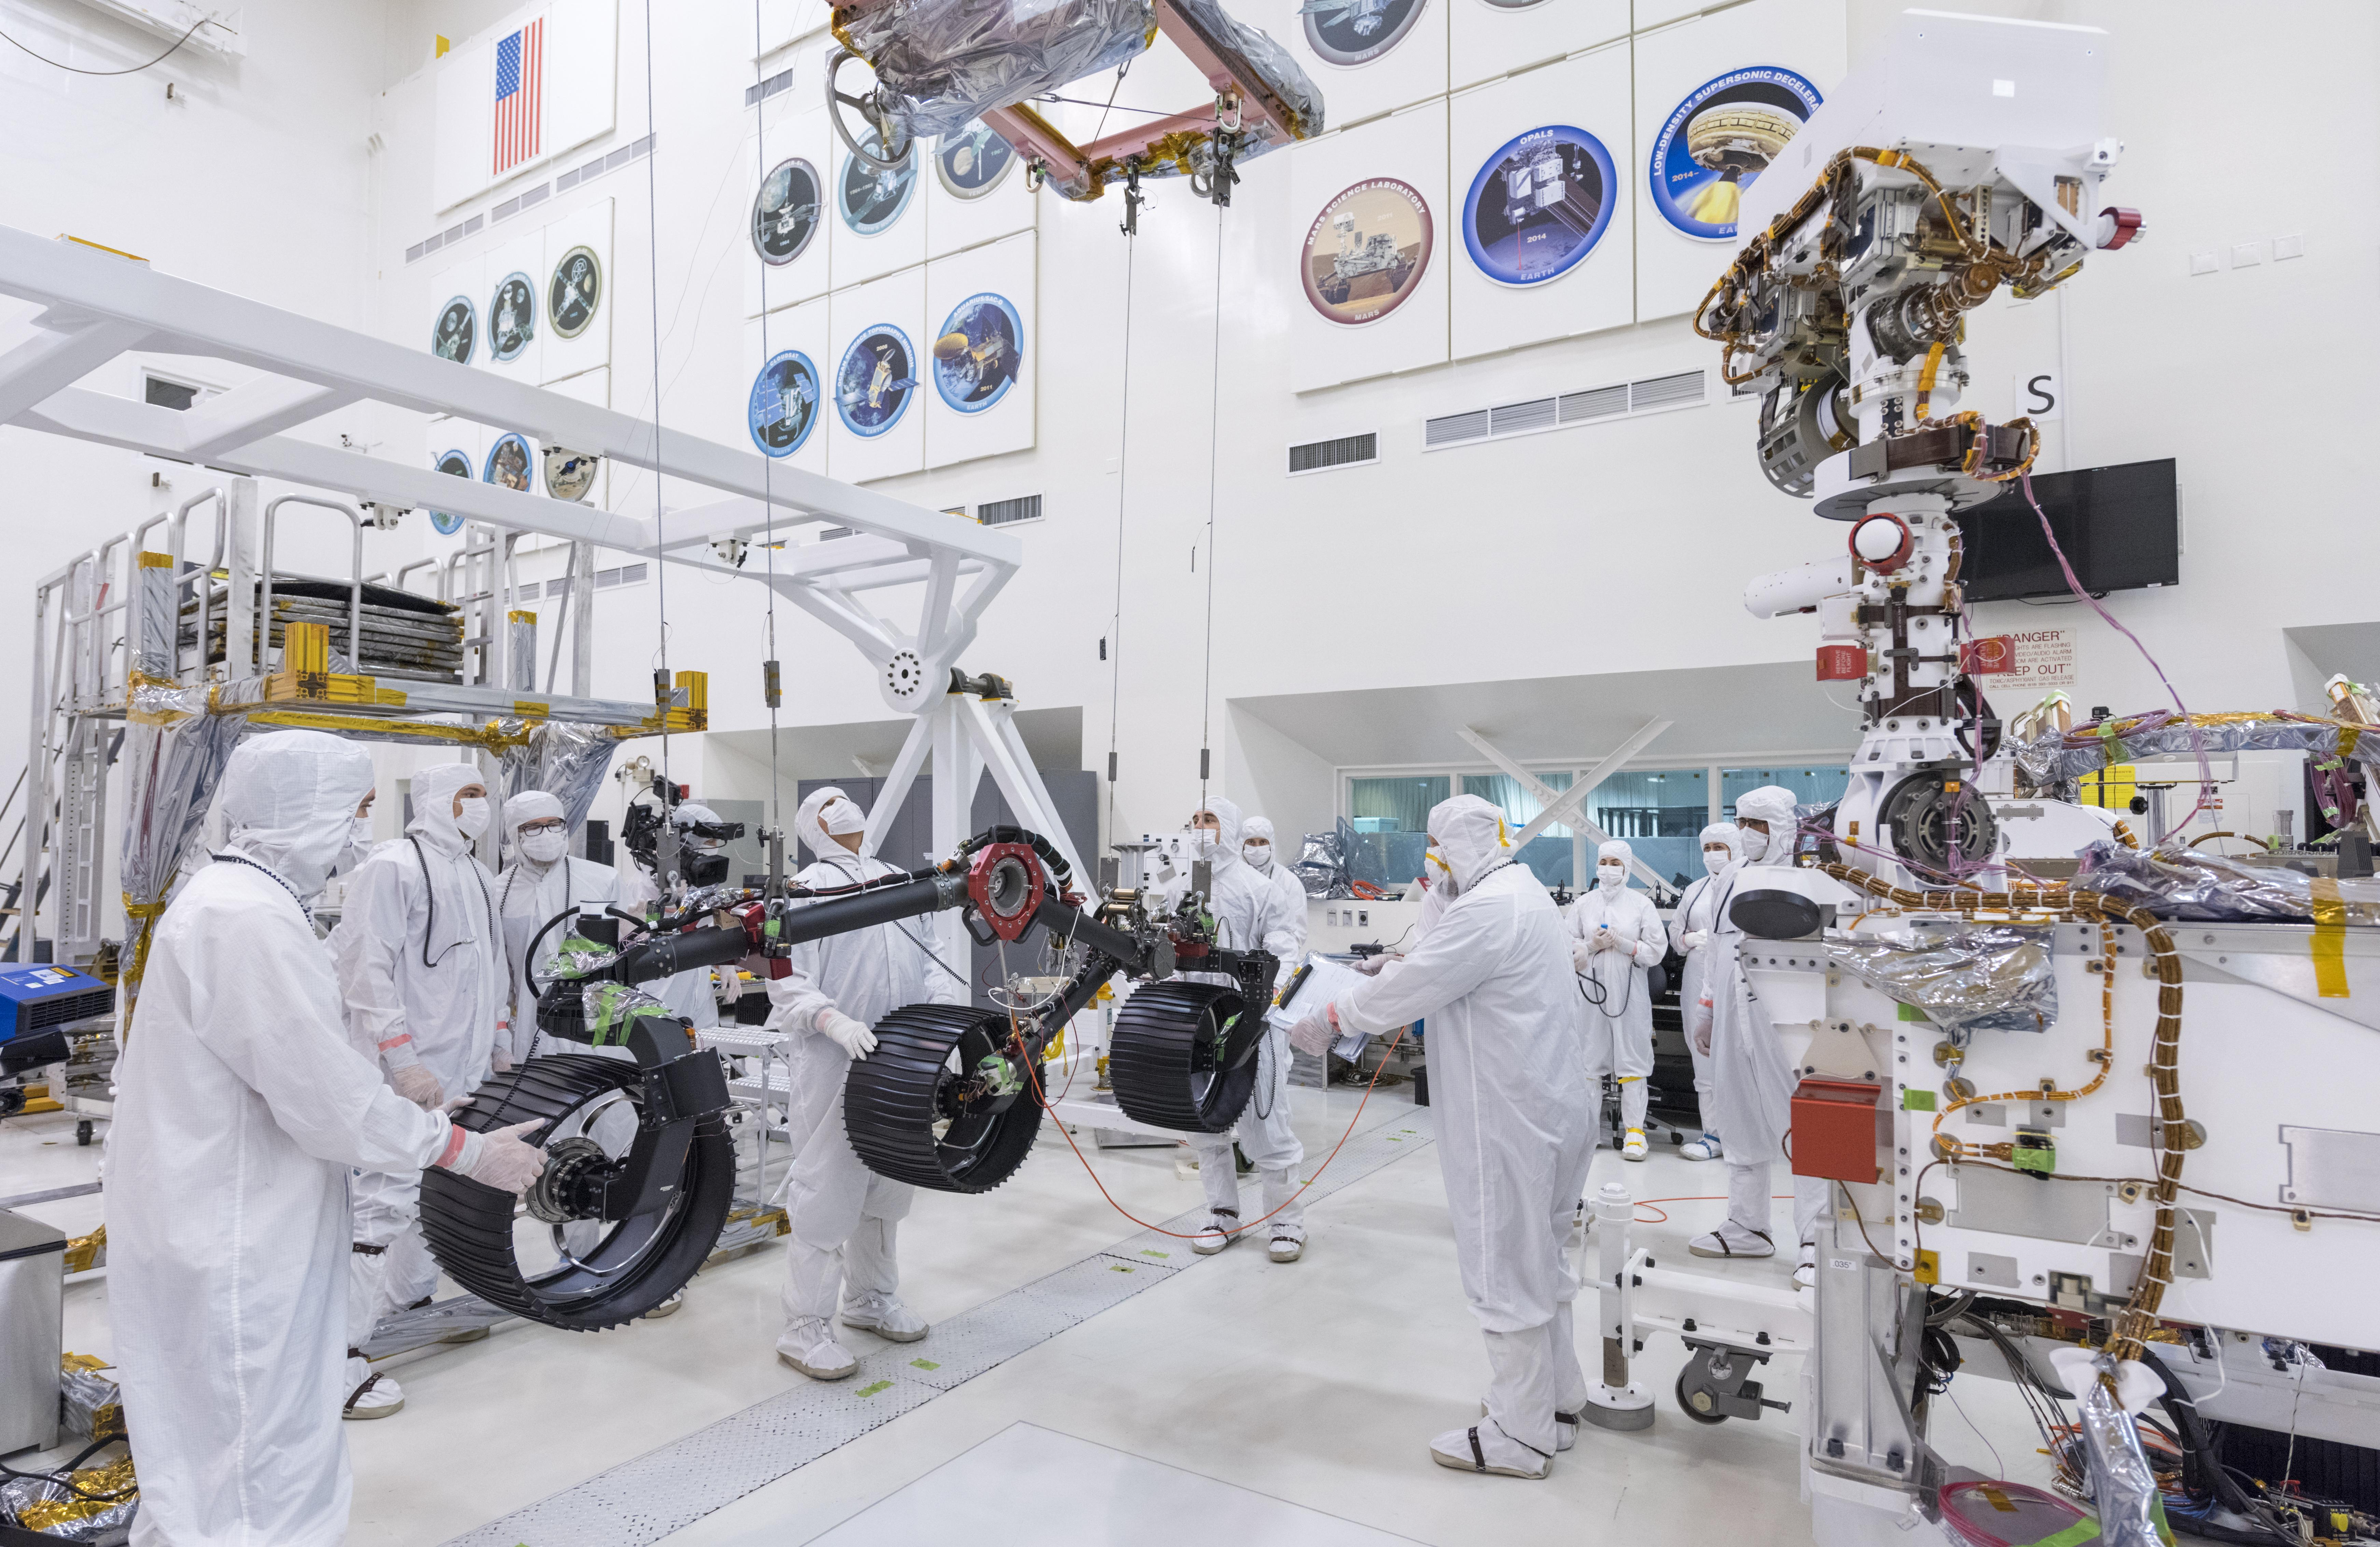 In this image, taken on June 13, 2019, engineers prepare the starboard legs and wheels for integration onto NASAs Mars 2020 rover.